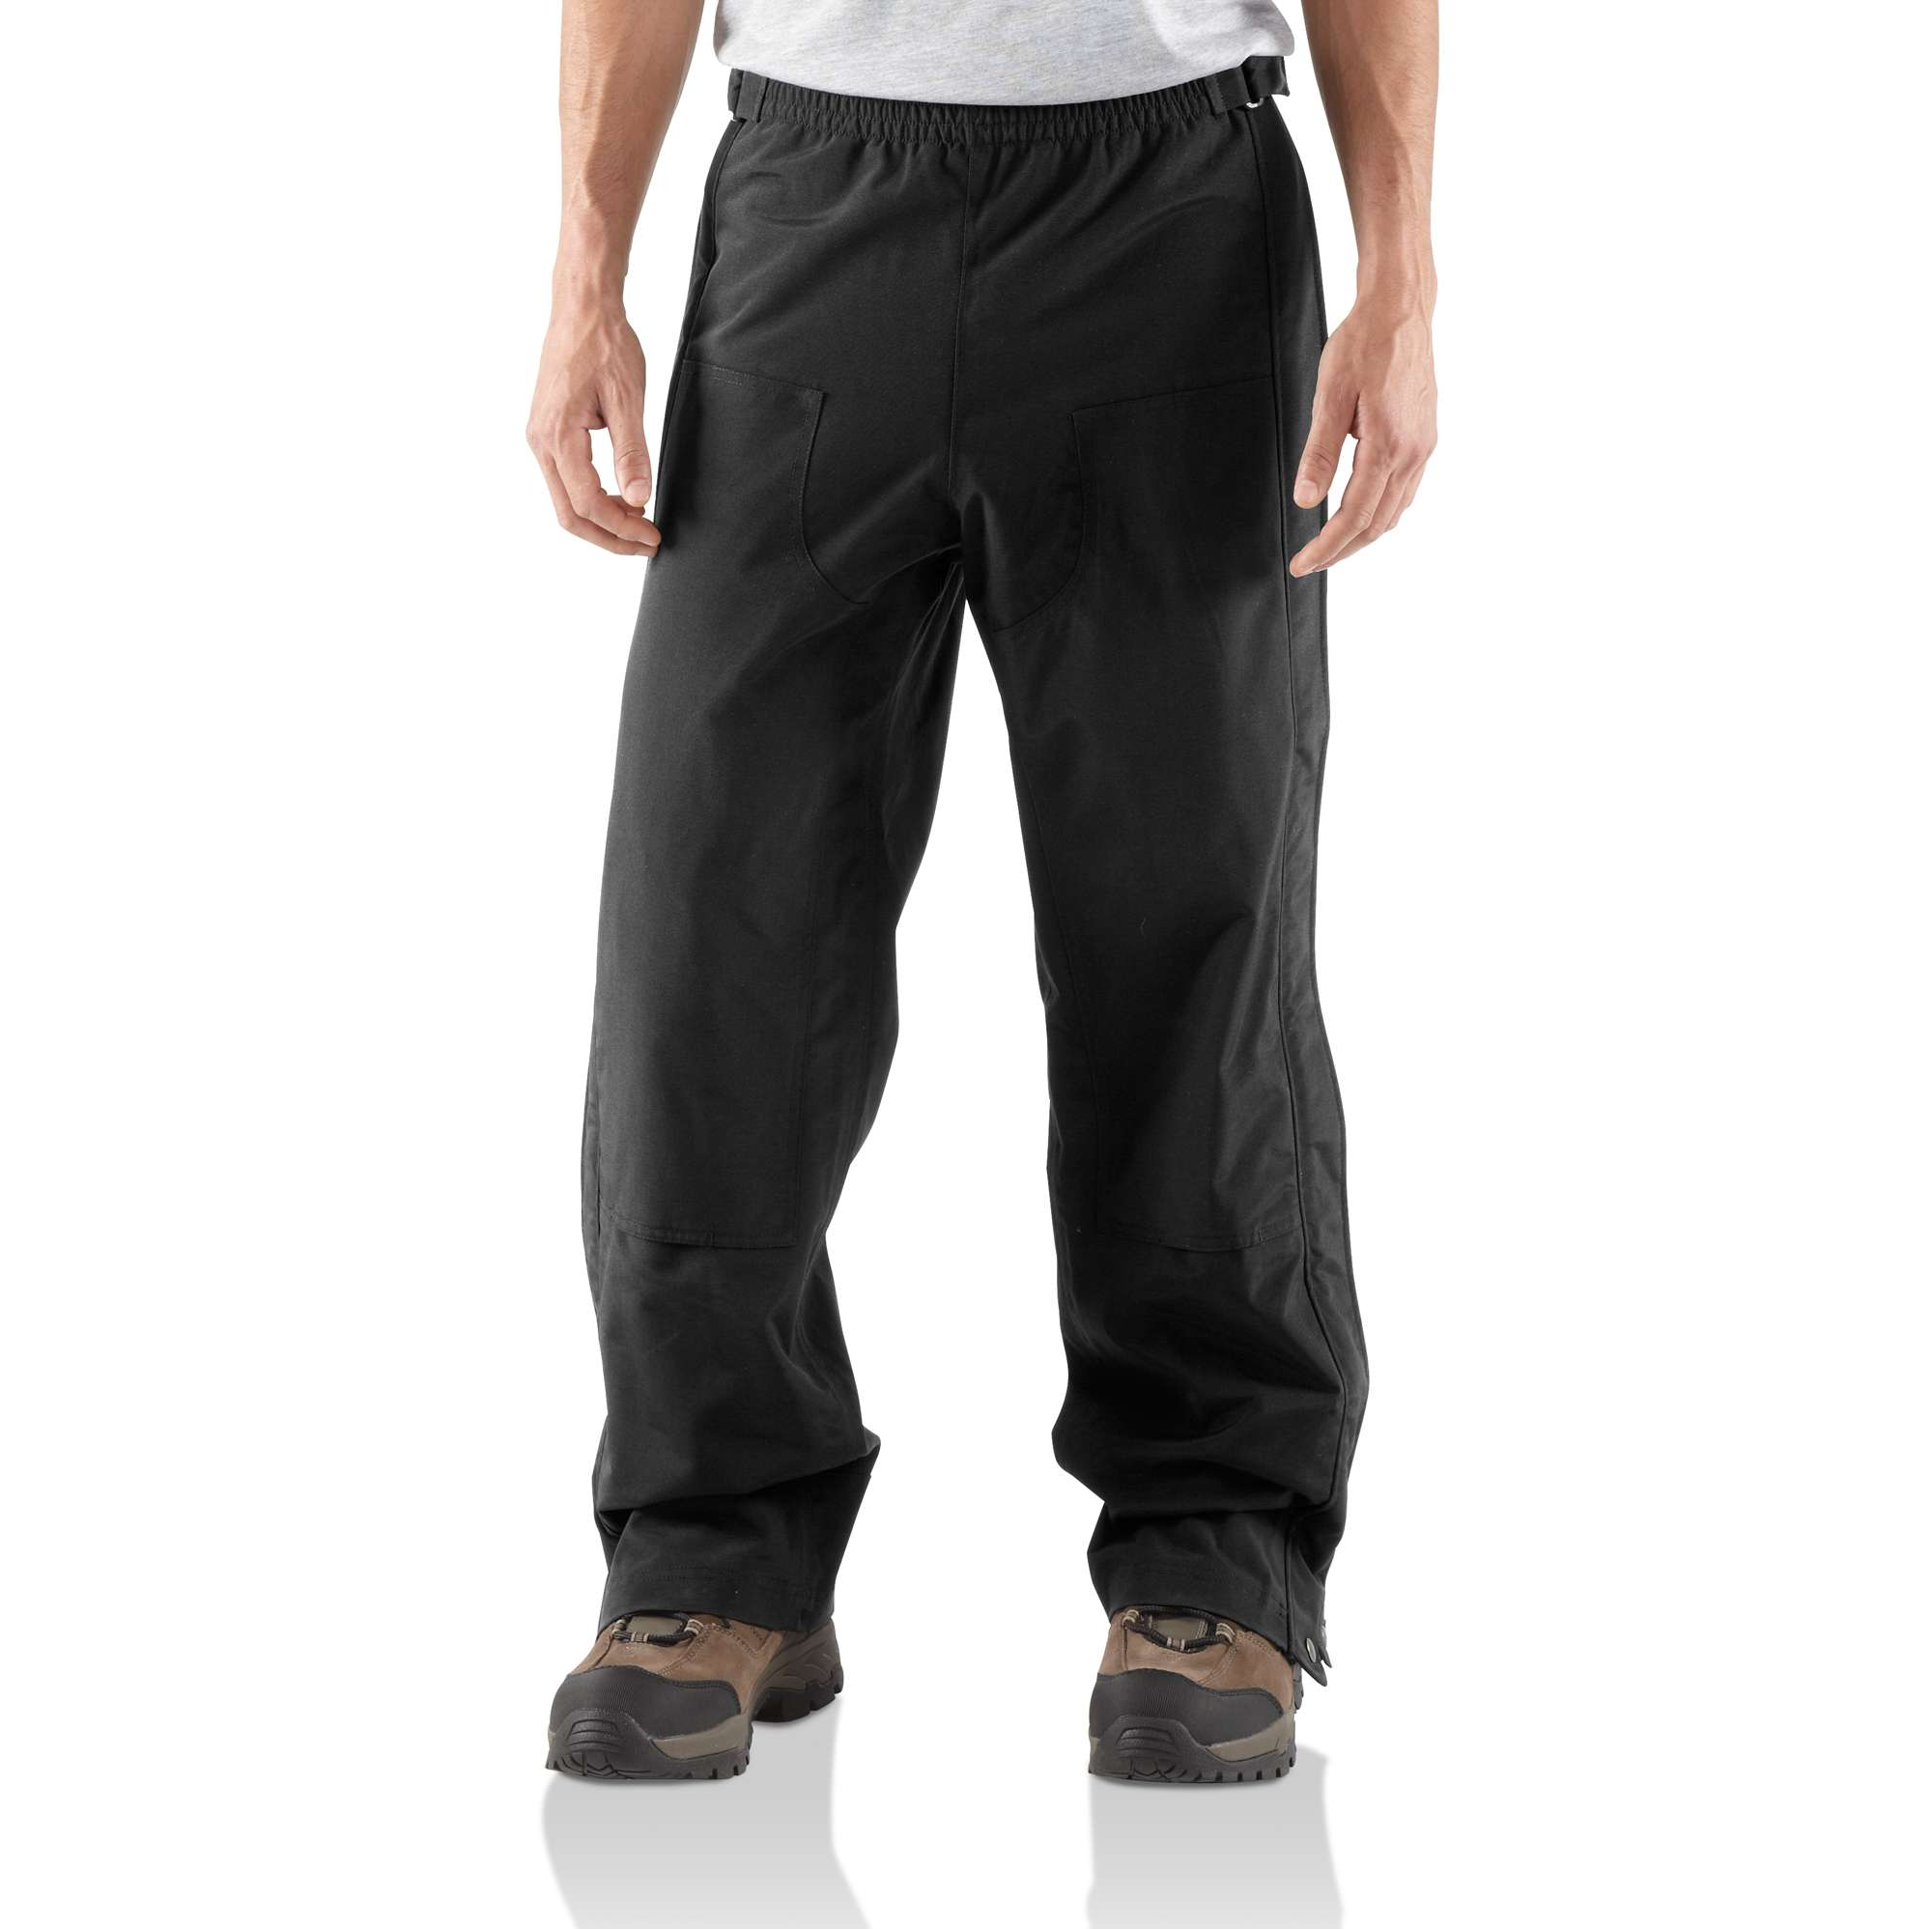 Carhartt Waterproof Breathable Pant